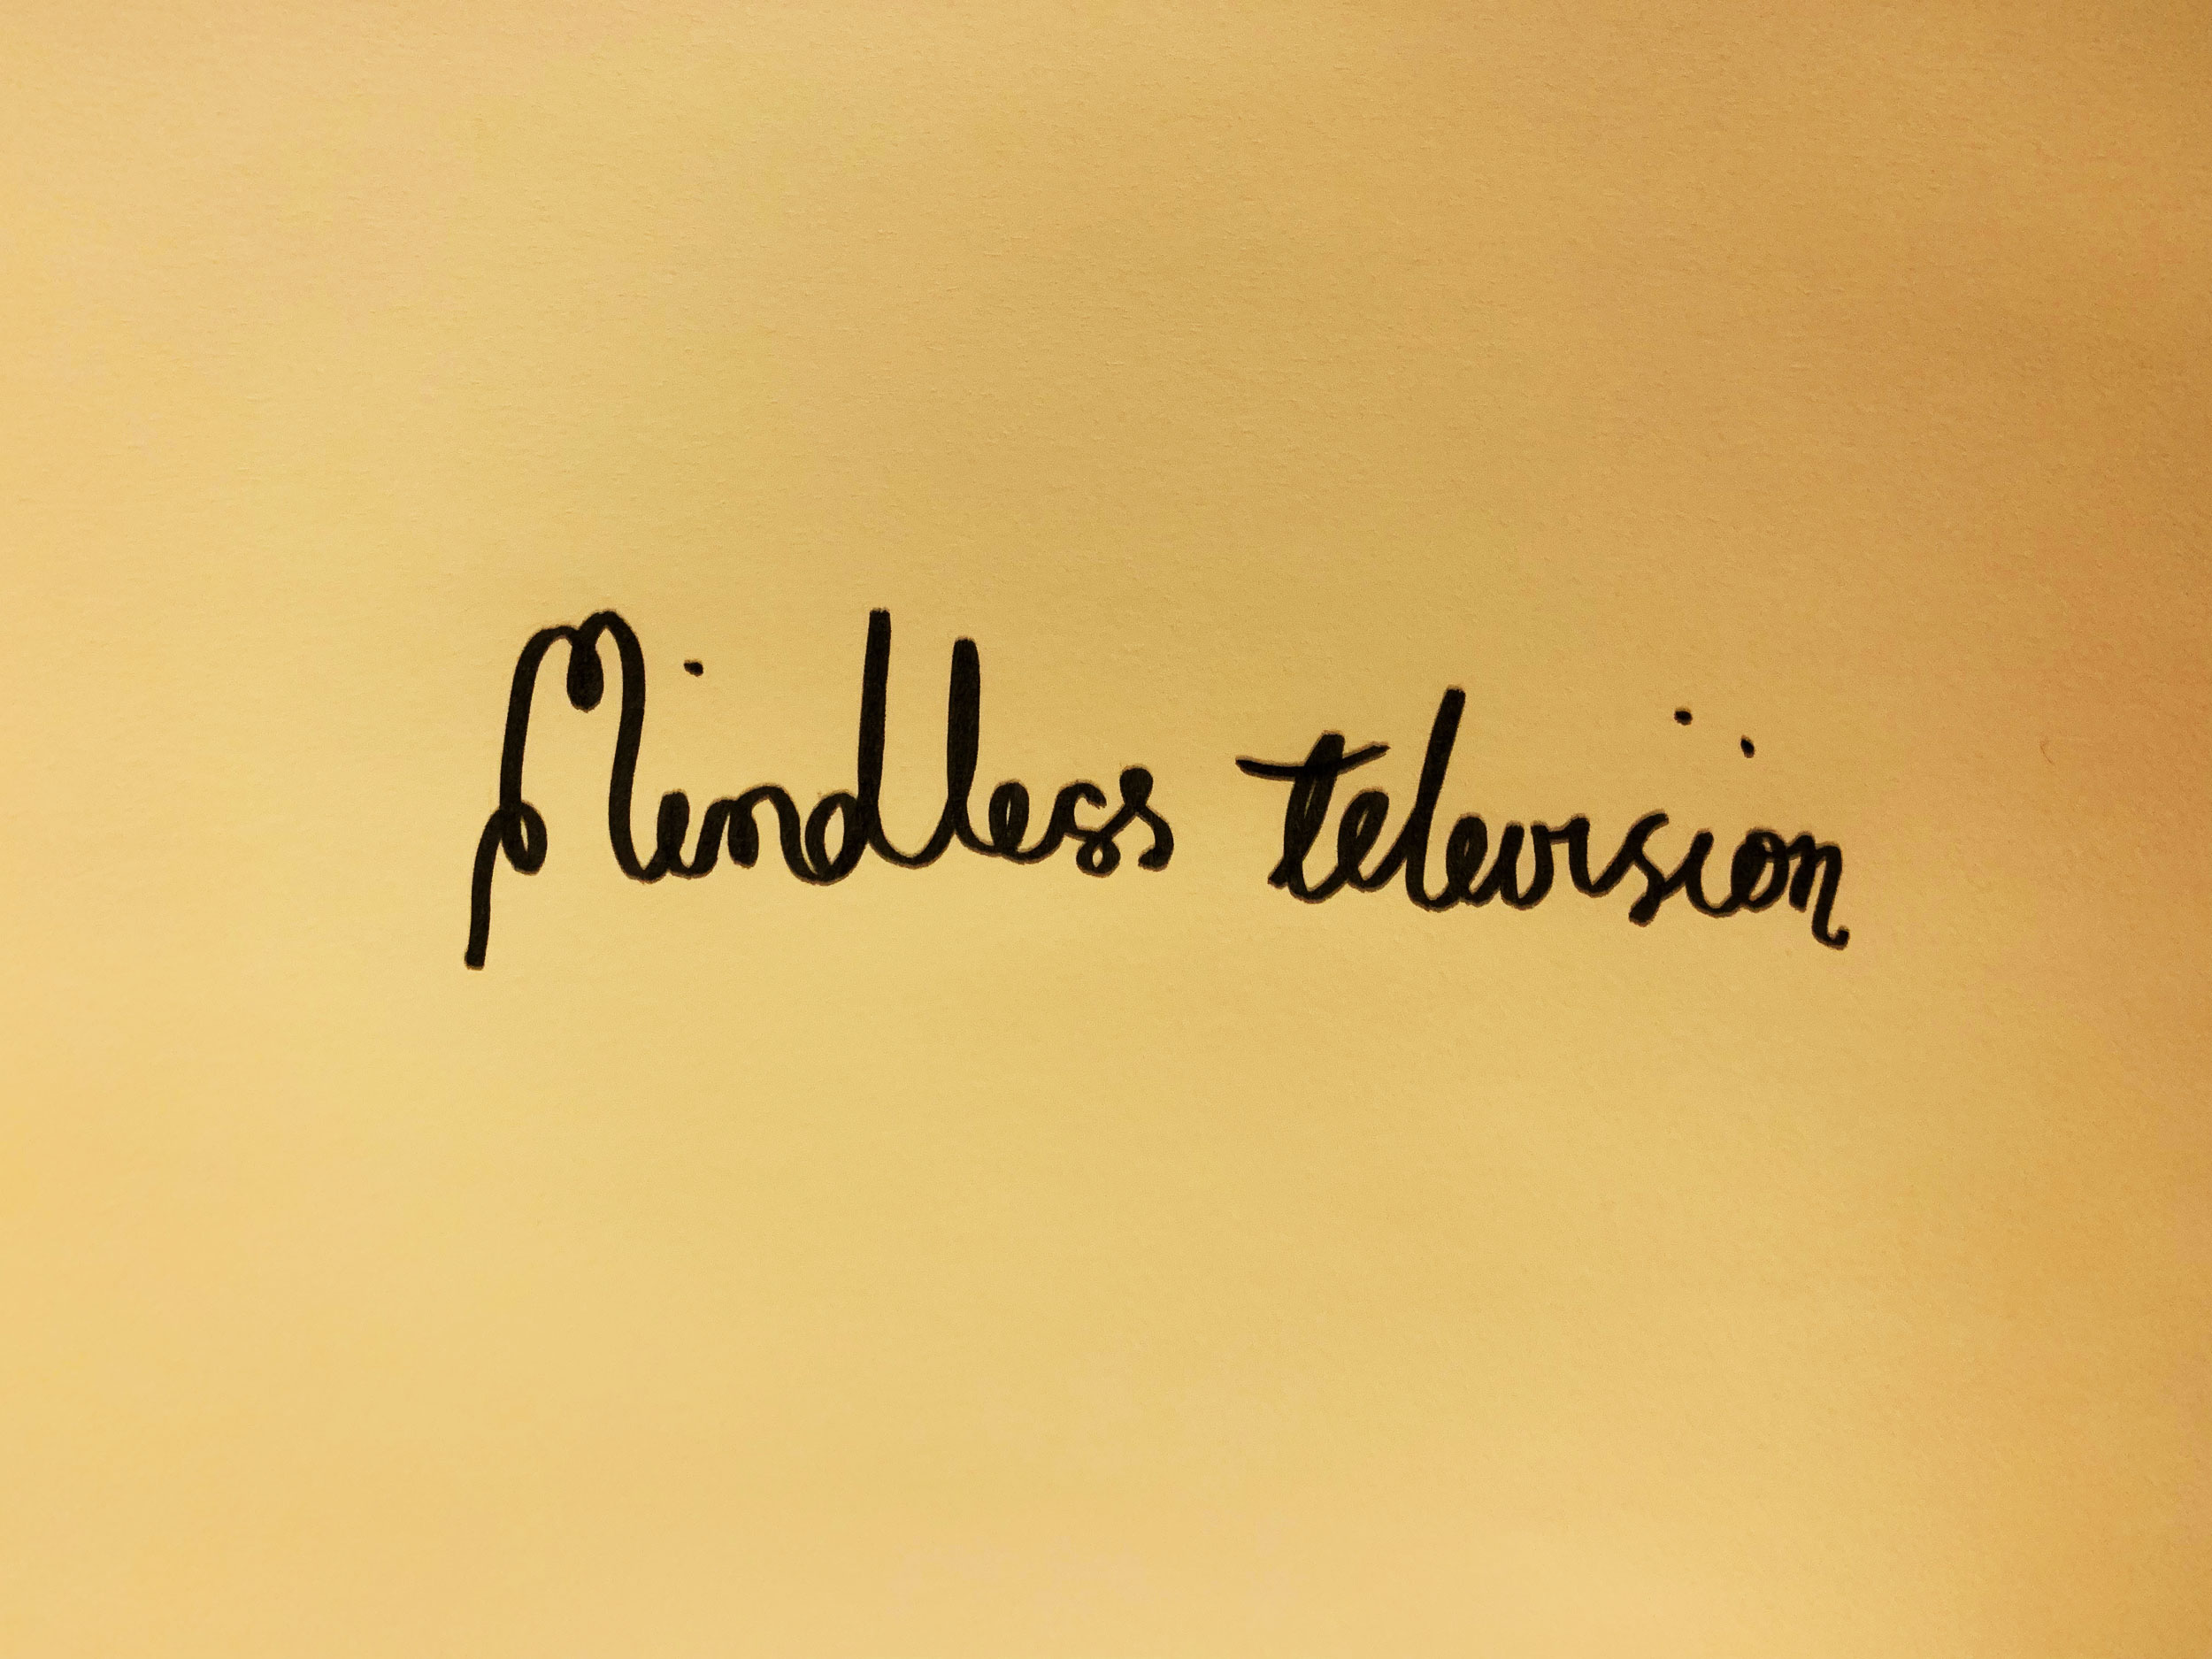 Mindless Television. Drawing Luke Hockley.